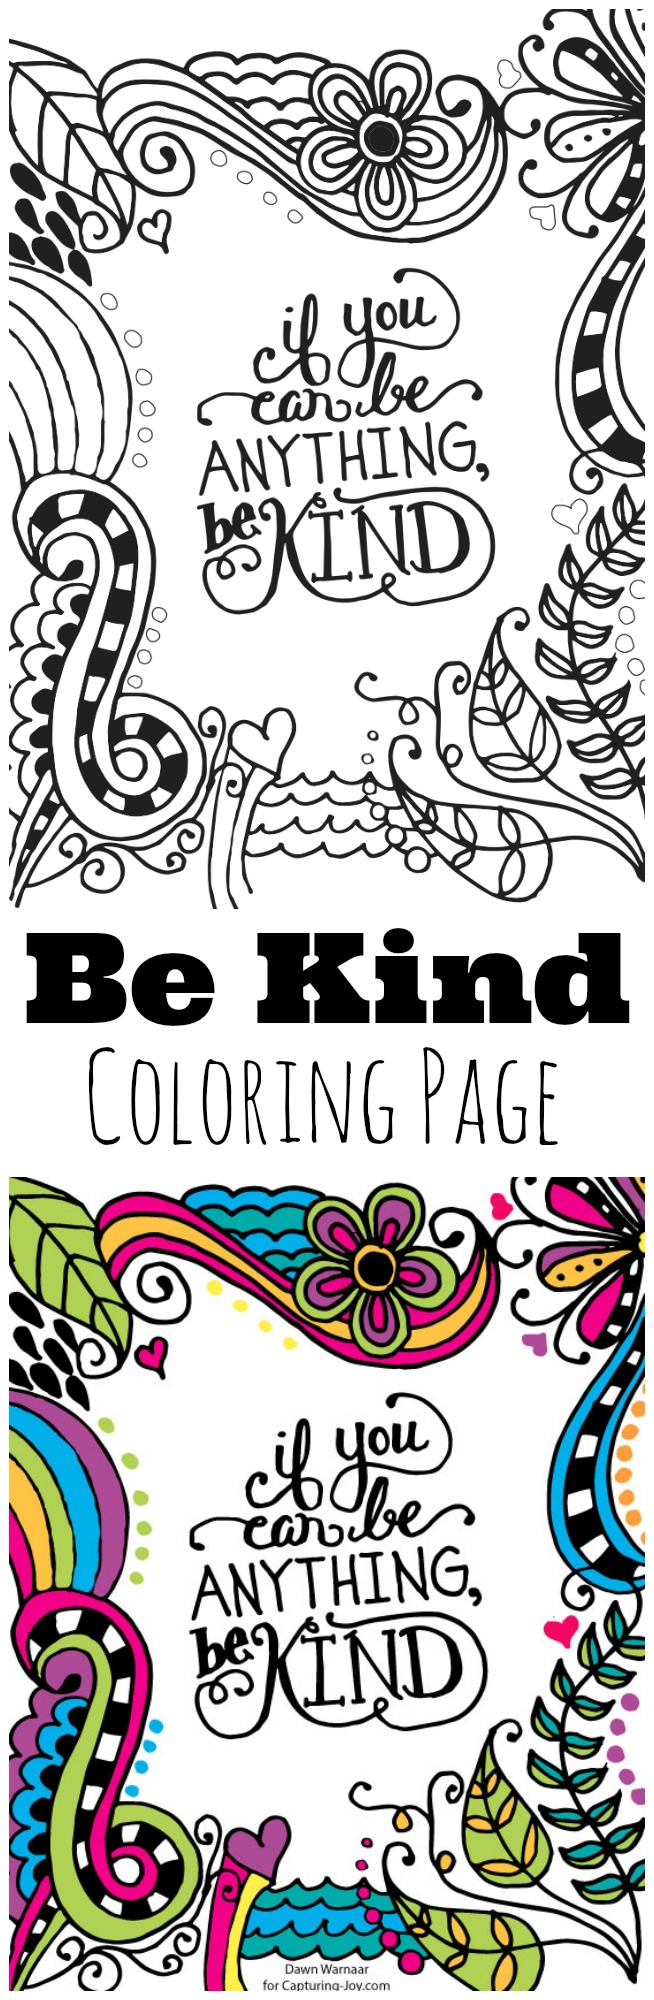 Whimsical Be Kind Print Capturing Joy With Kristen Duke